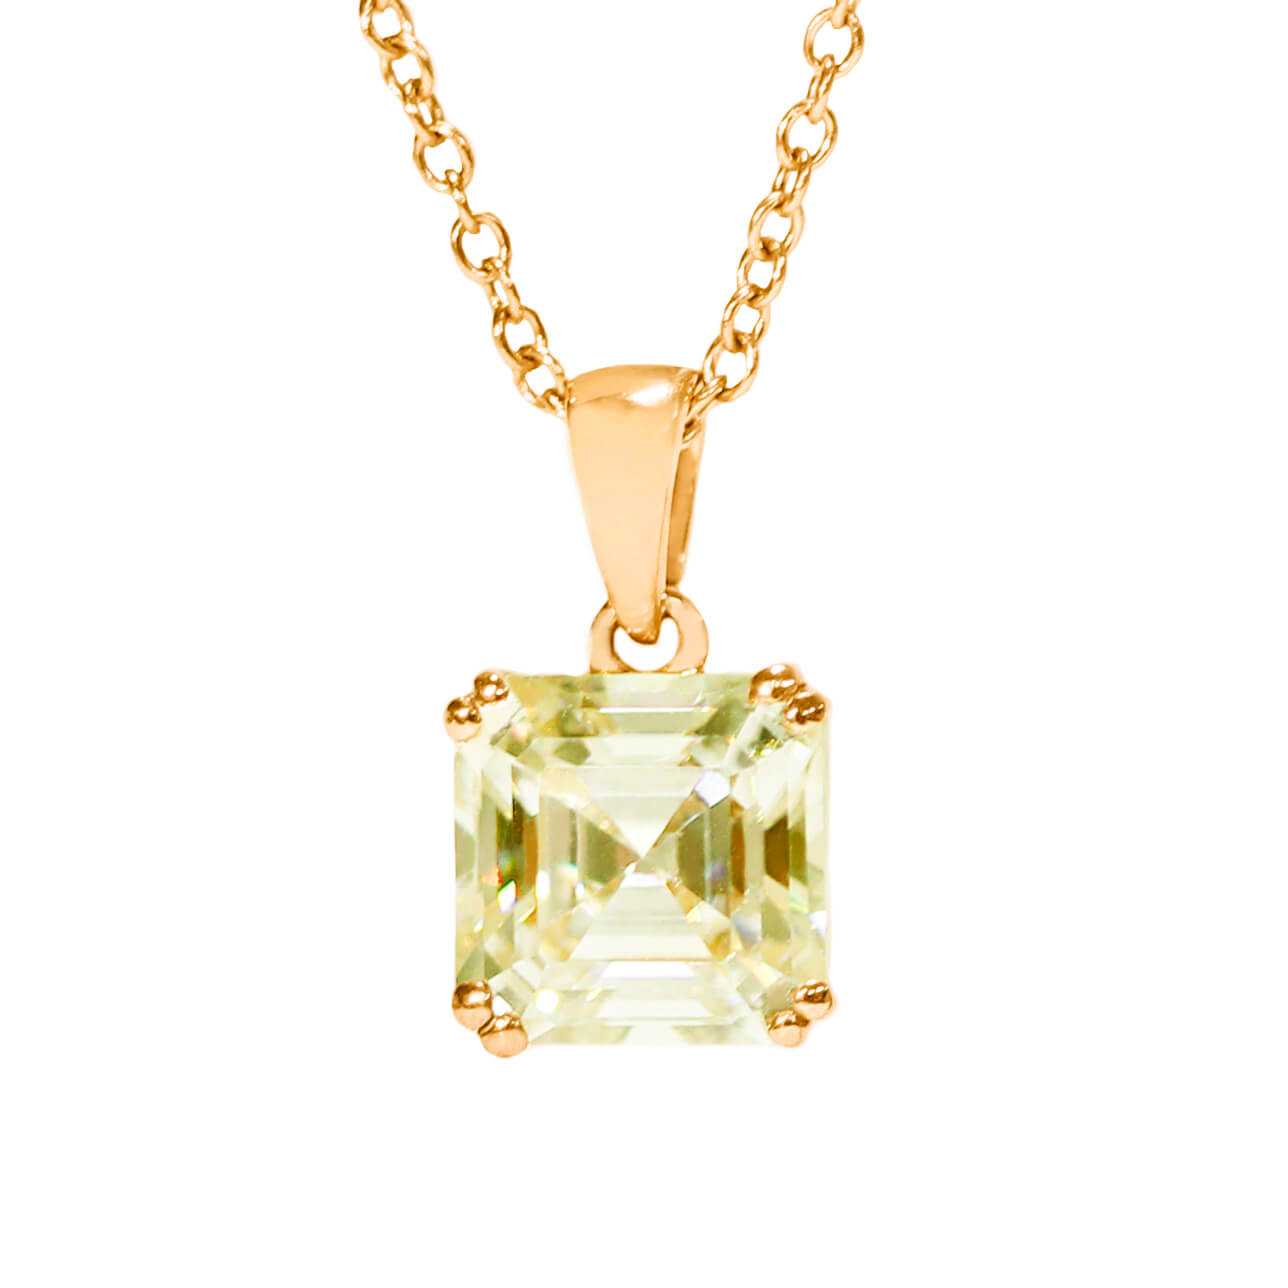 Fancy Yellow Moissanite Asscher Cut 18K Gold Pendant - Lecaine Gems Moissanite